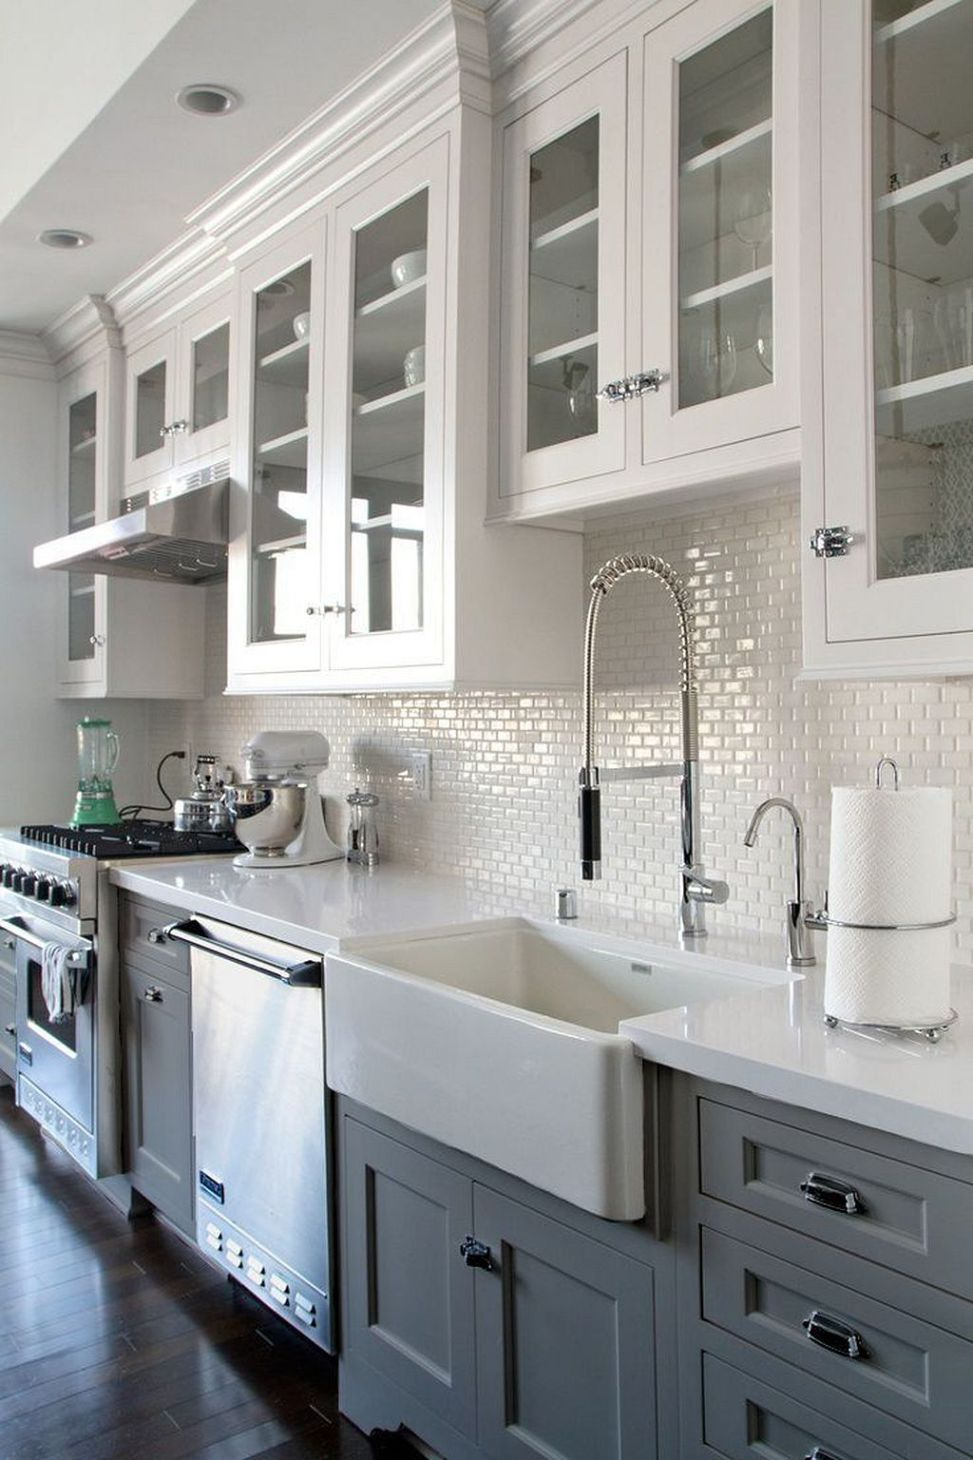 7 trends two tone kitchen cabinets ideas for 2018 two tone kitchen cabinets ideas farmhouse